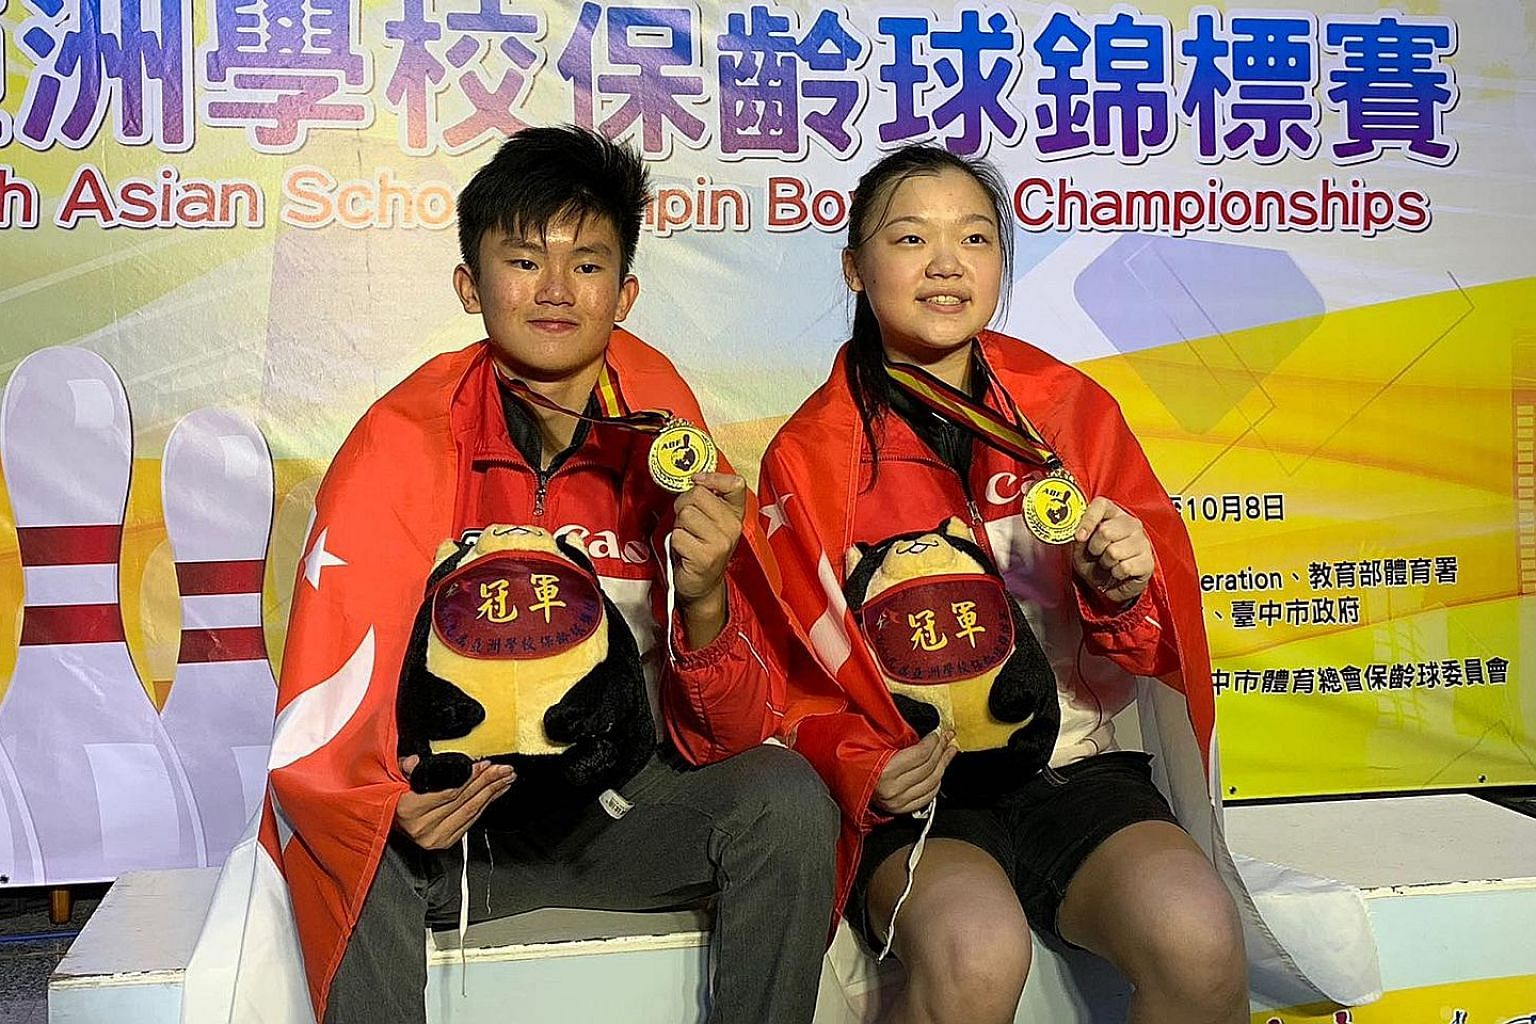 Eugene Yeo and Quek Lu Yi won the boys' and girls' Masters respectively on the final day of the Asian Schools Tenpin Championships yesterday in Chinese Taipei.